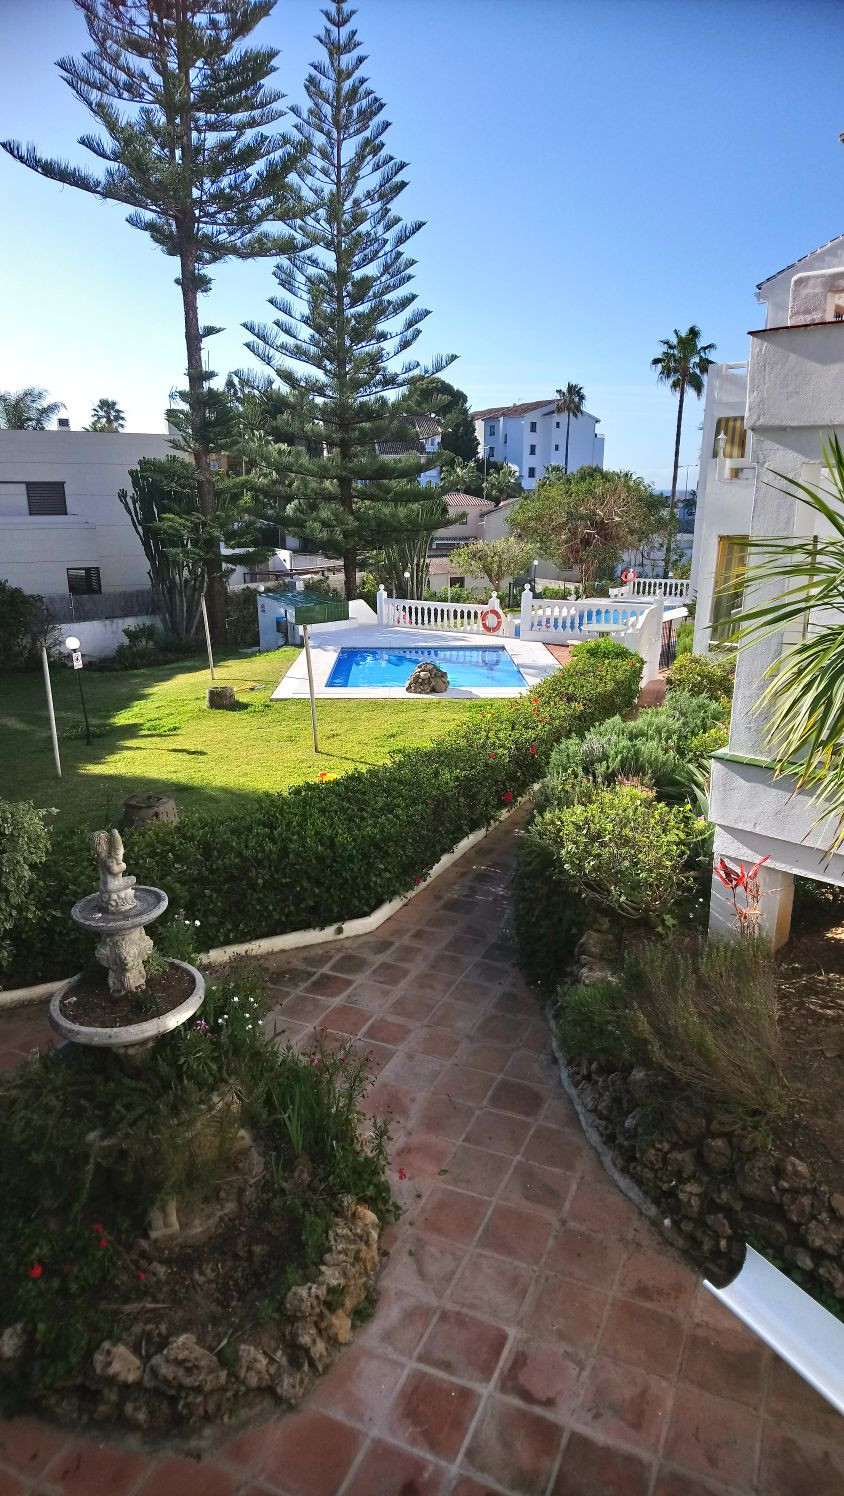 GREAT LOCATION FOR THIS TWO BEDROOM TWO BATHROOM APARTMENT IN LOWER RIVIERA CLOSE TO SHOPS, THE BEAC, Spain